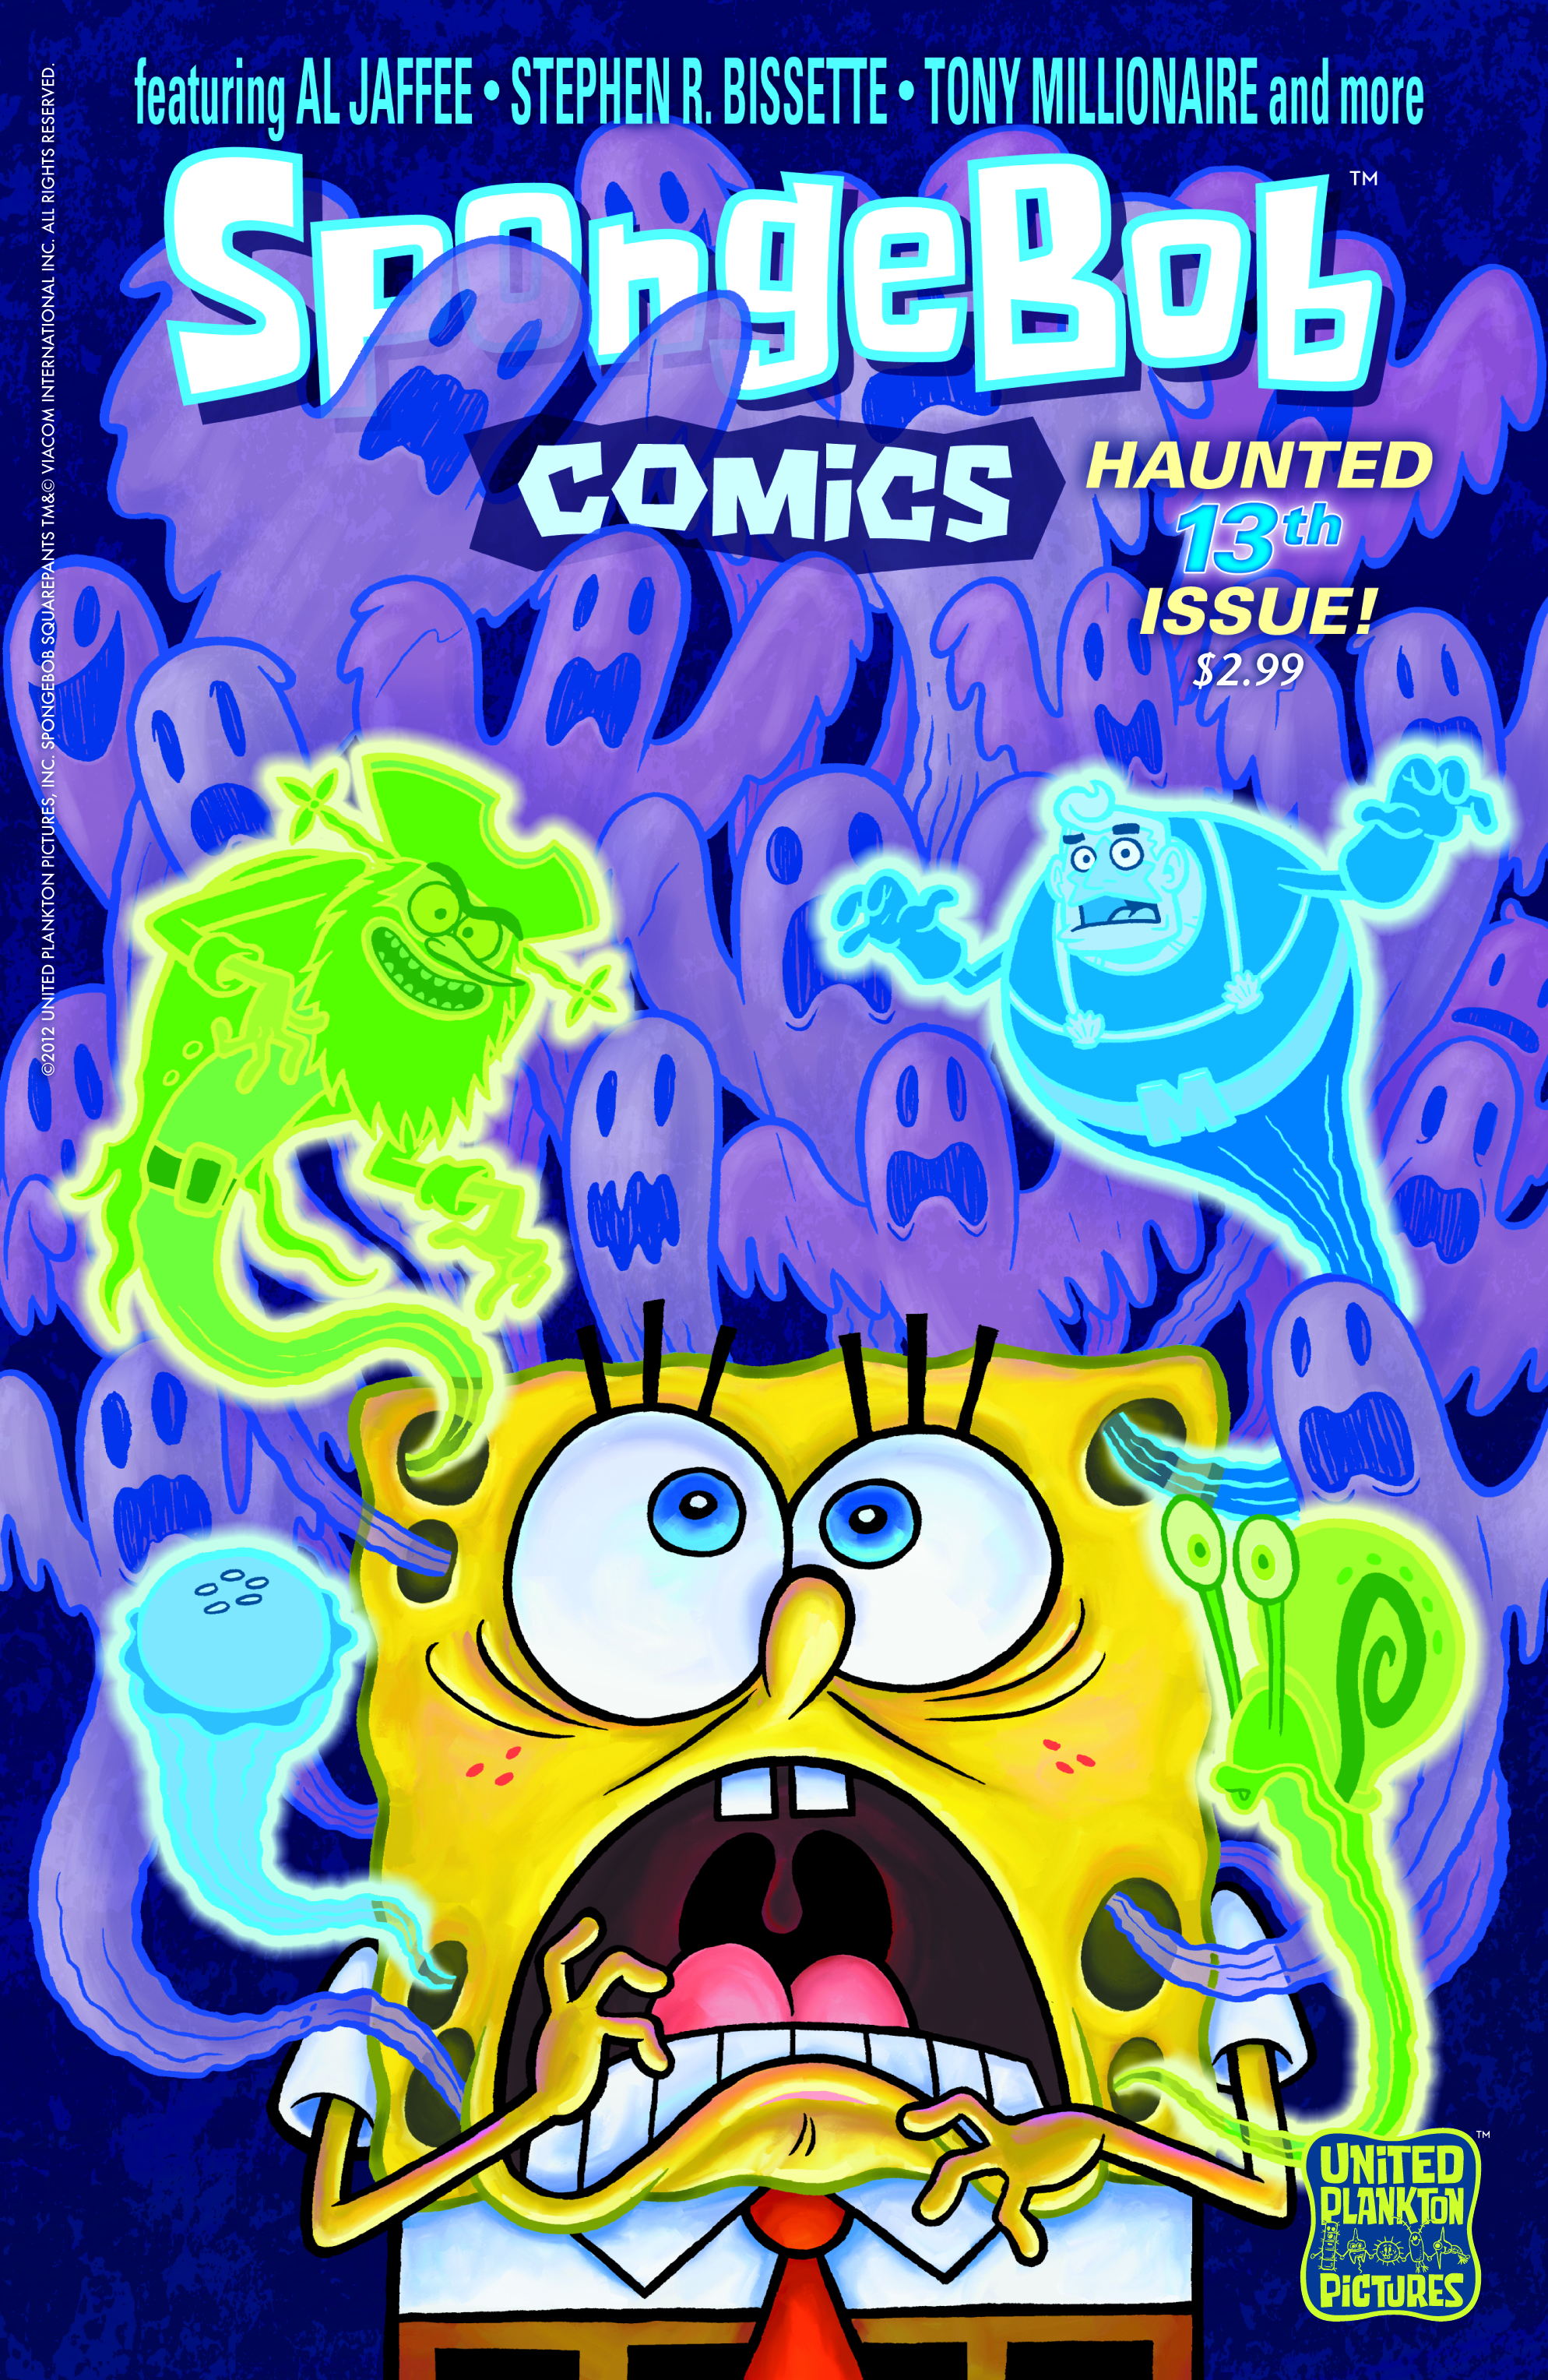 SPONGEBOB COMICS #13